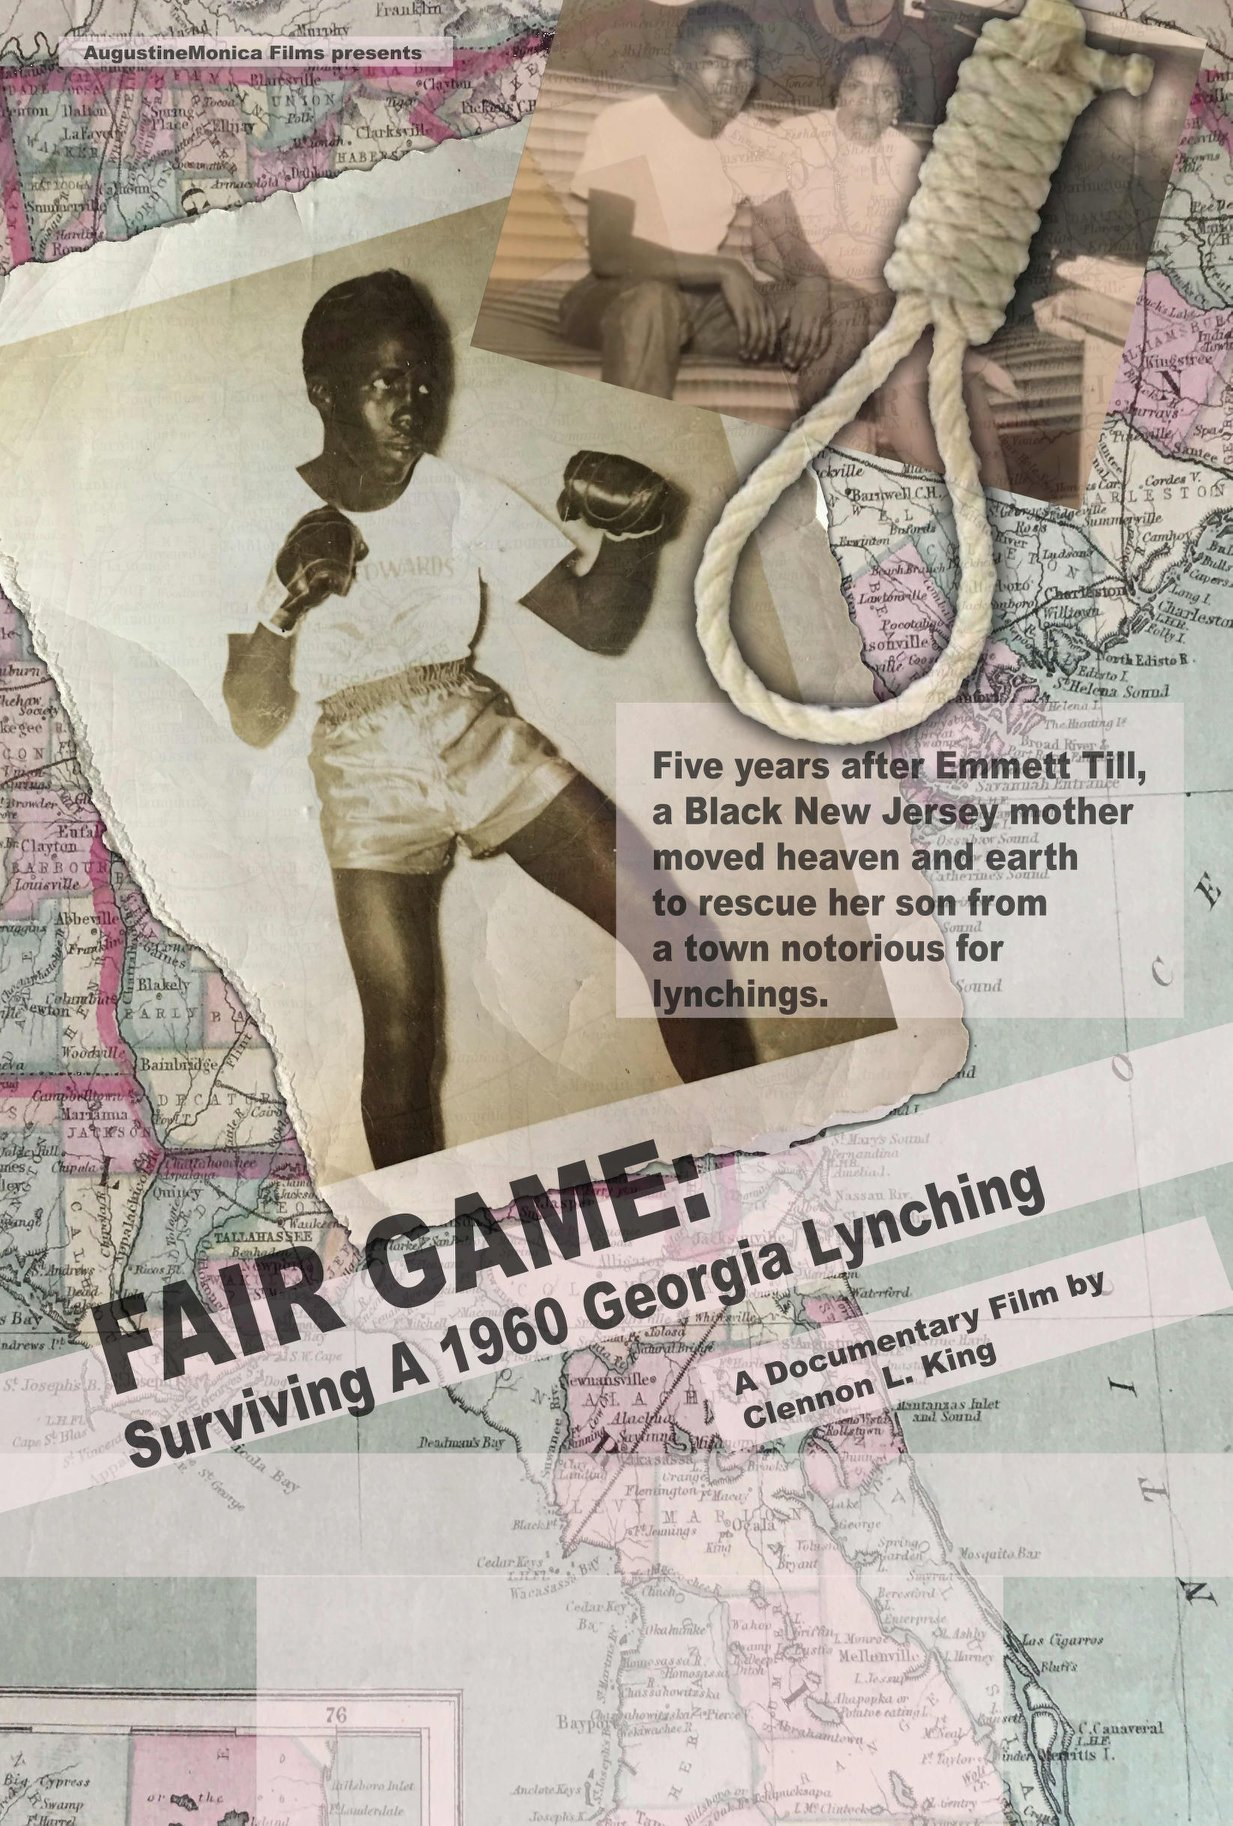 """Fair Game: Surviving a 1960 Georgia Lynching"""